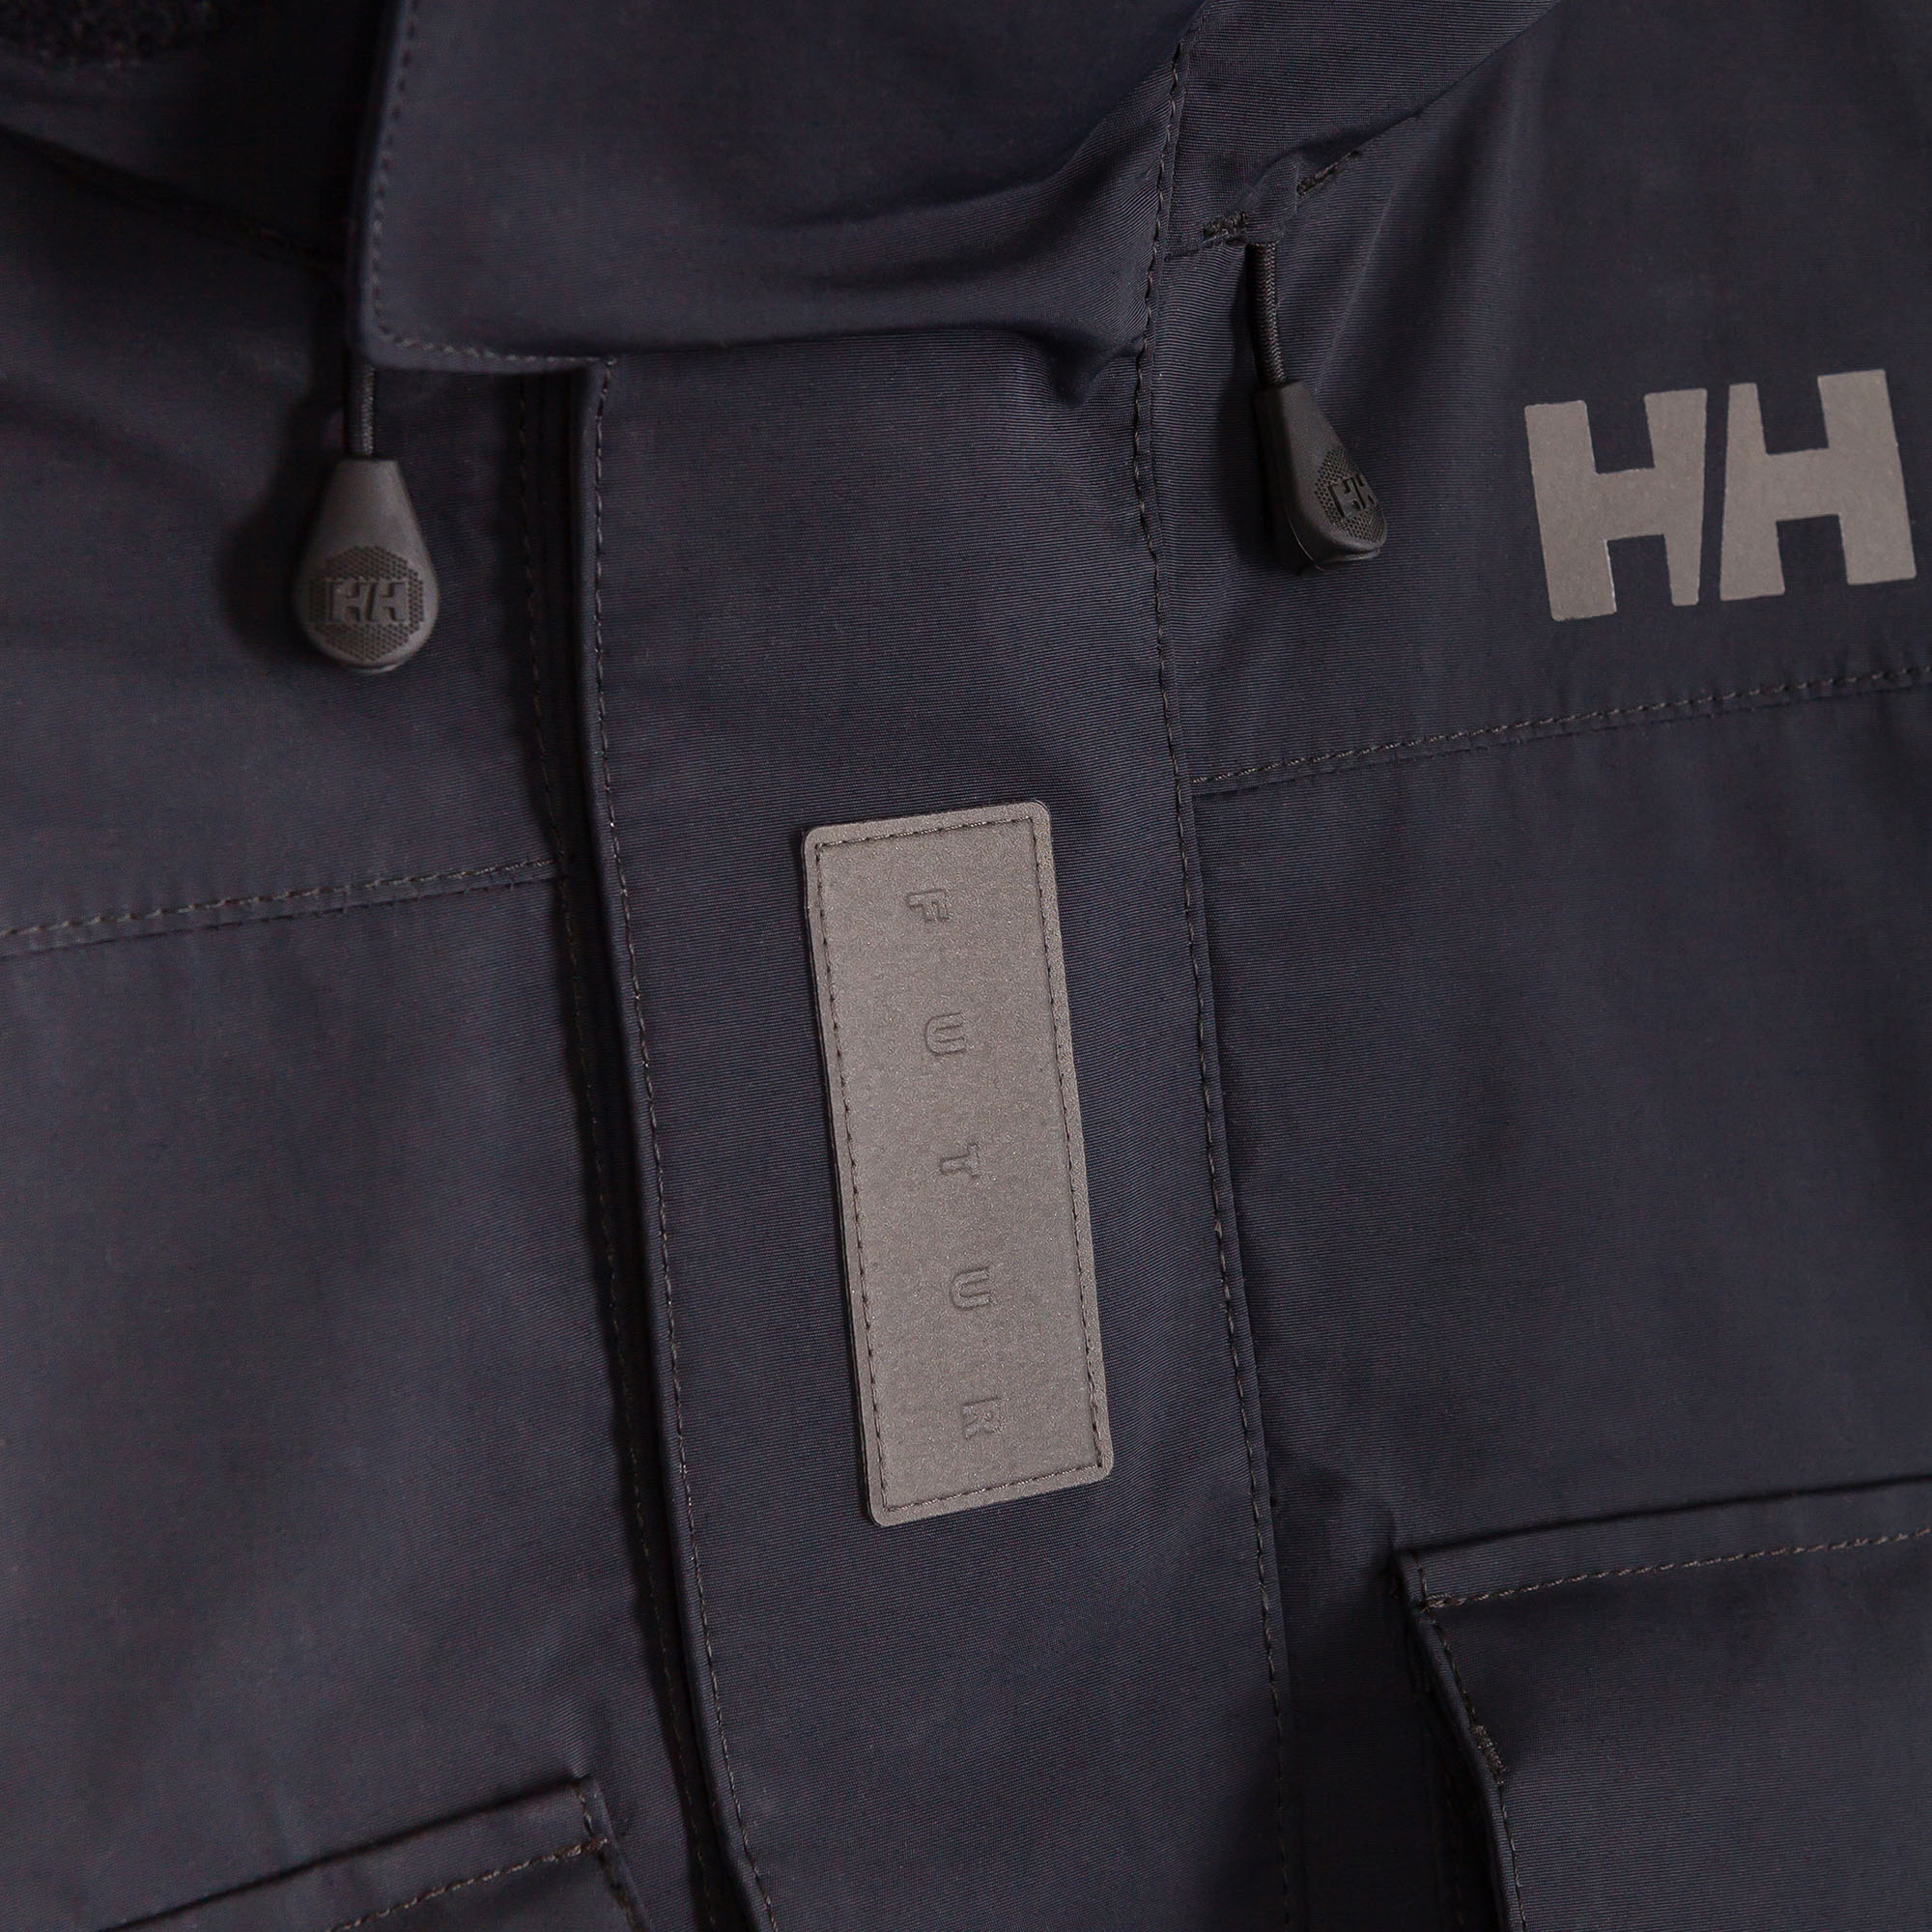 HELLY HANSEN X FUTUR - JACKET - DETAIL 1